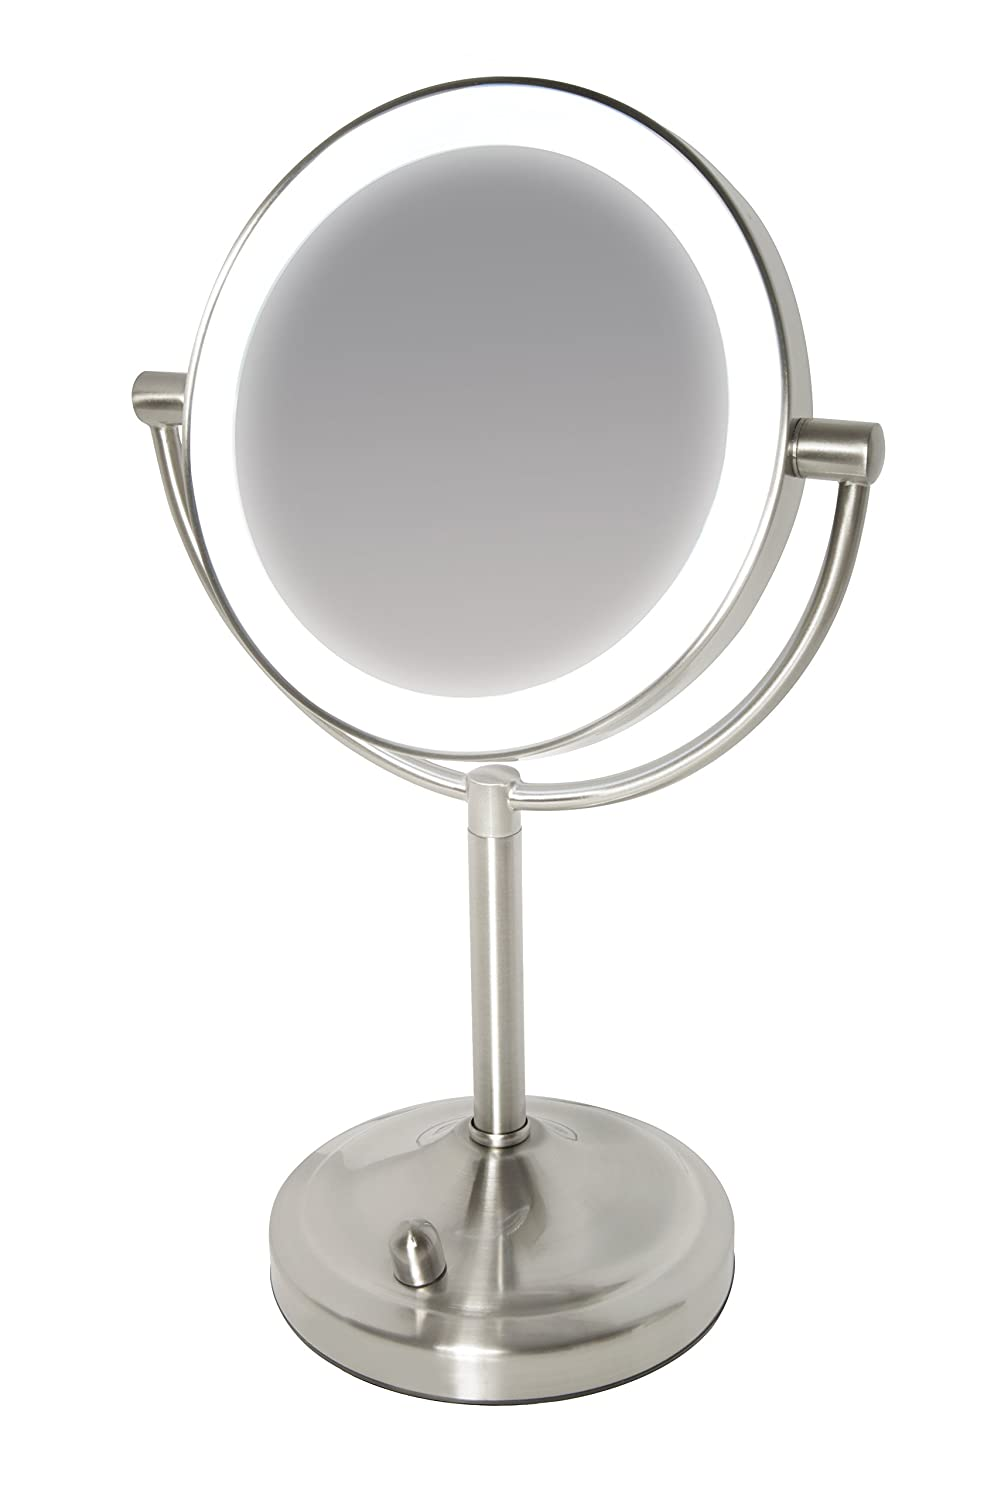 HoMedics Beauty Spa Double Sided Mirror with Dimmable LED – Perfect Addition to Dressing Table/Bathroom, Lighting for Make Up Application + Styling, Normal / 7x Magnification, Every Angle Flawless MIR-8150-EU